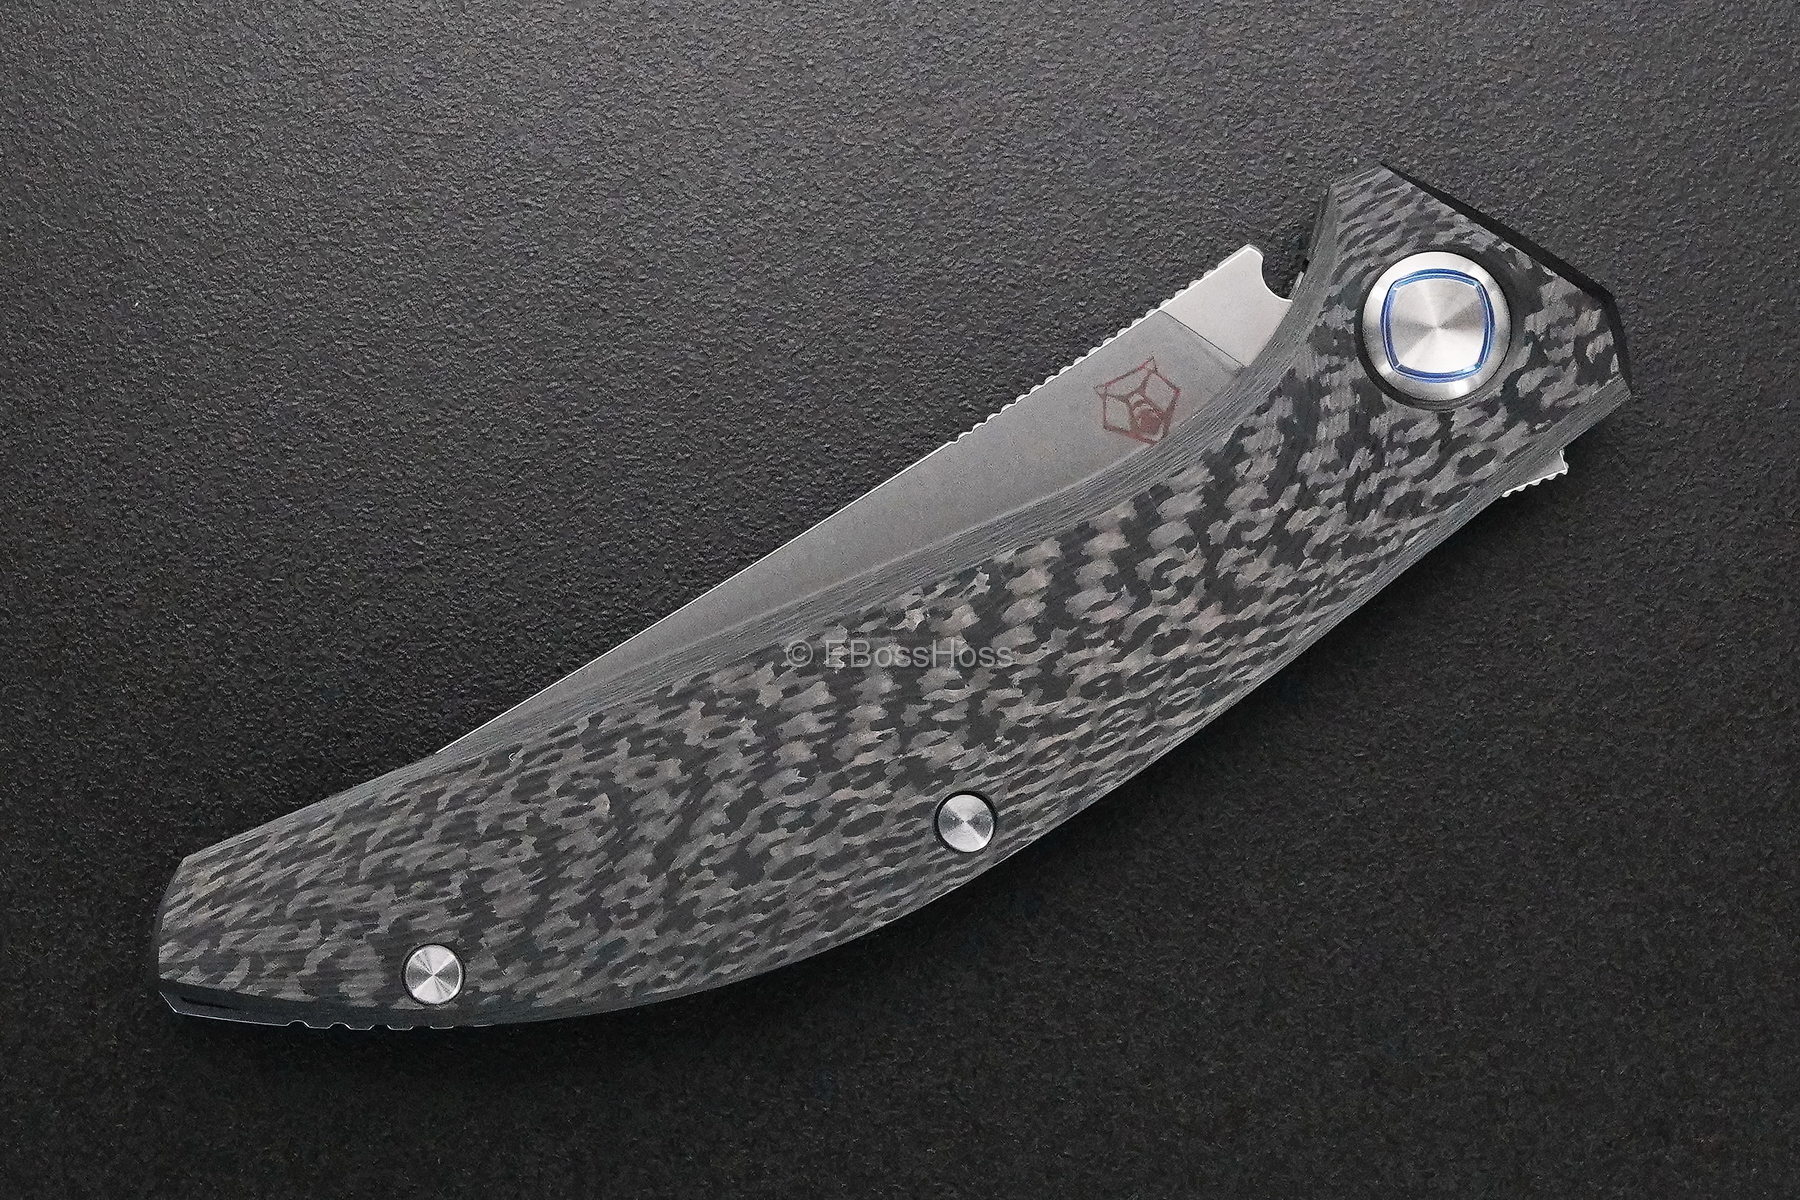 Sergey Shirogorov Sigma Flipper - Dmitry Sinkevich Design